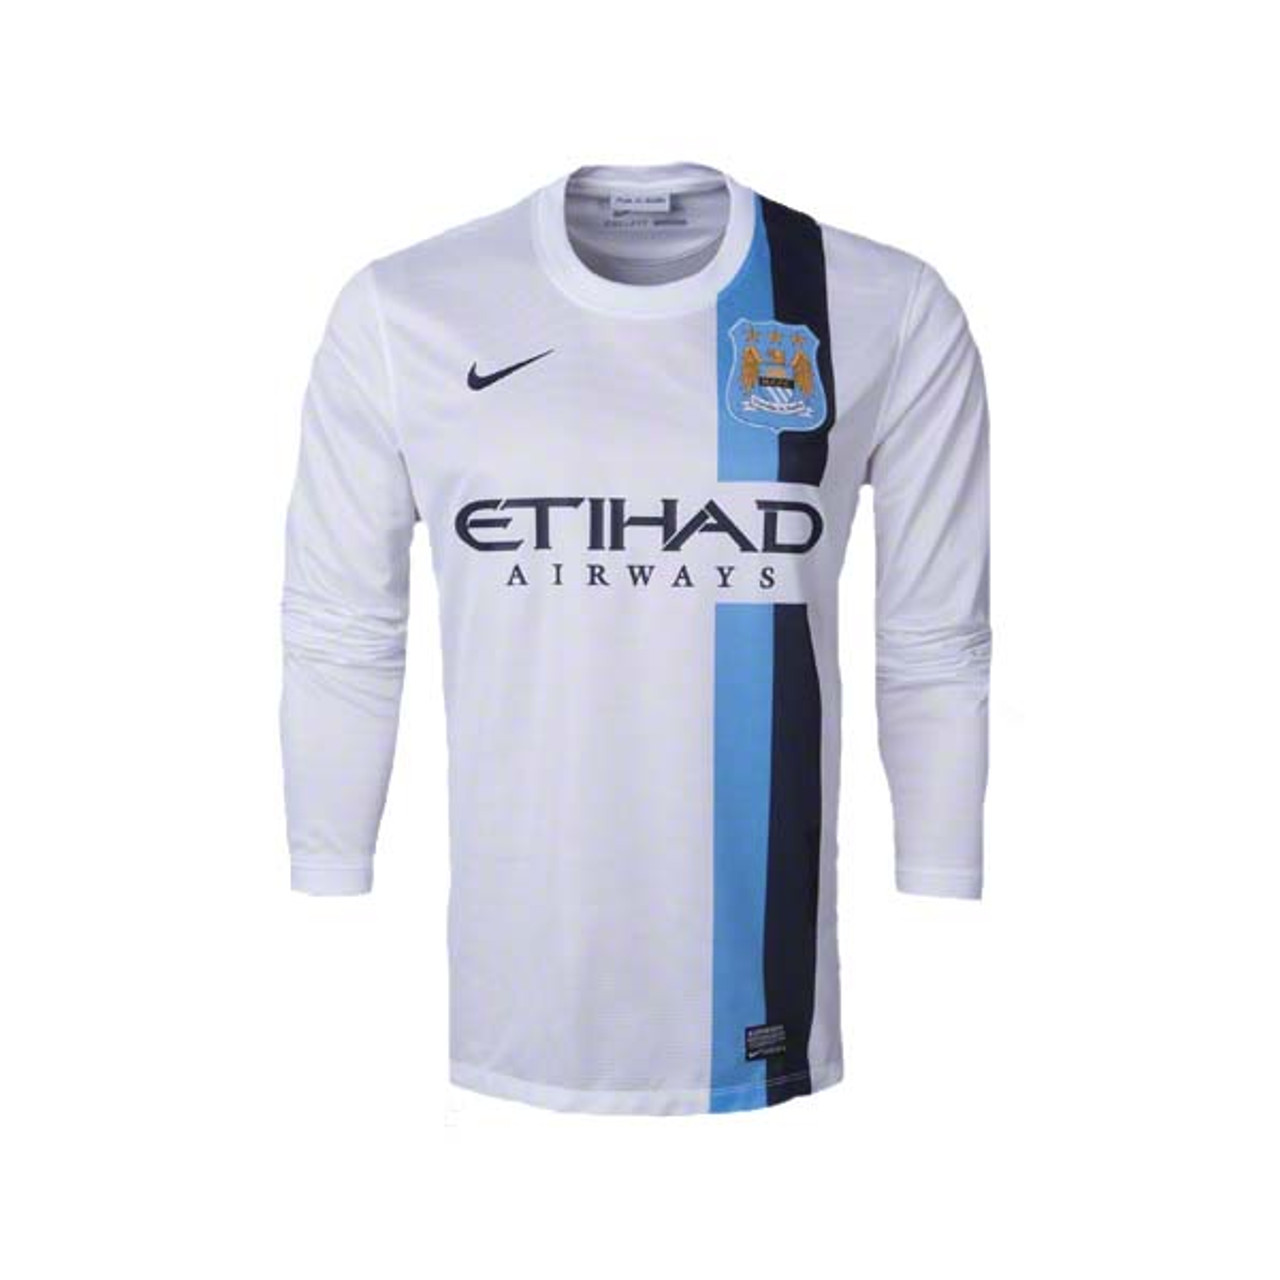 huge discount 092dc cdbf9 NIKE MANCHESTER CITY 2014 WHITE L/S JERSEY